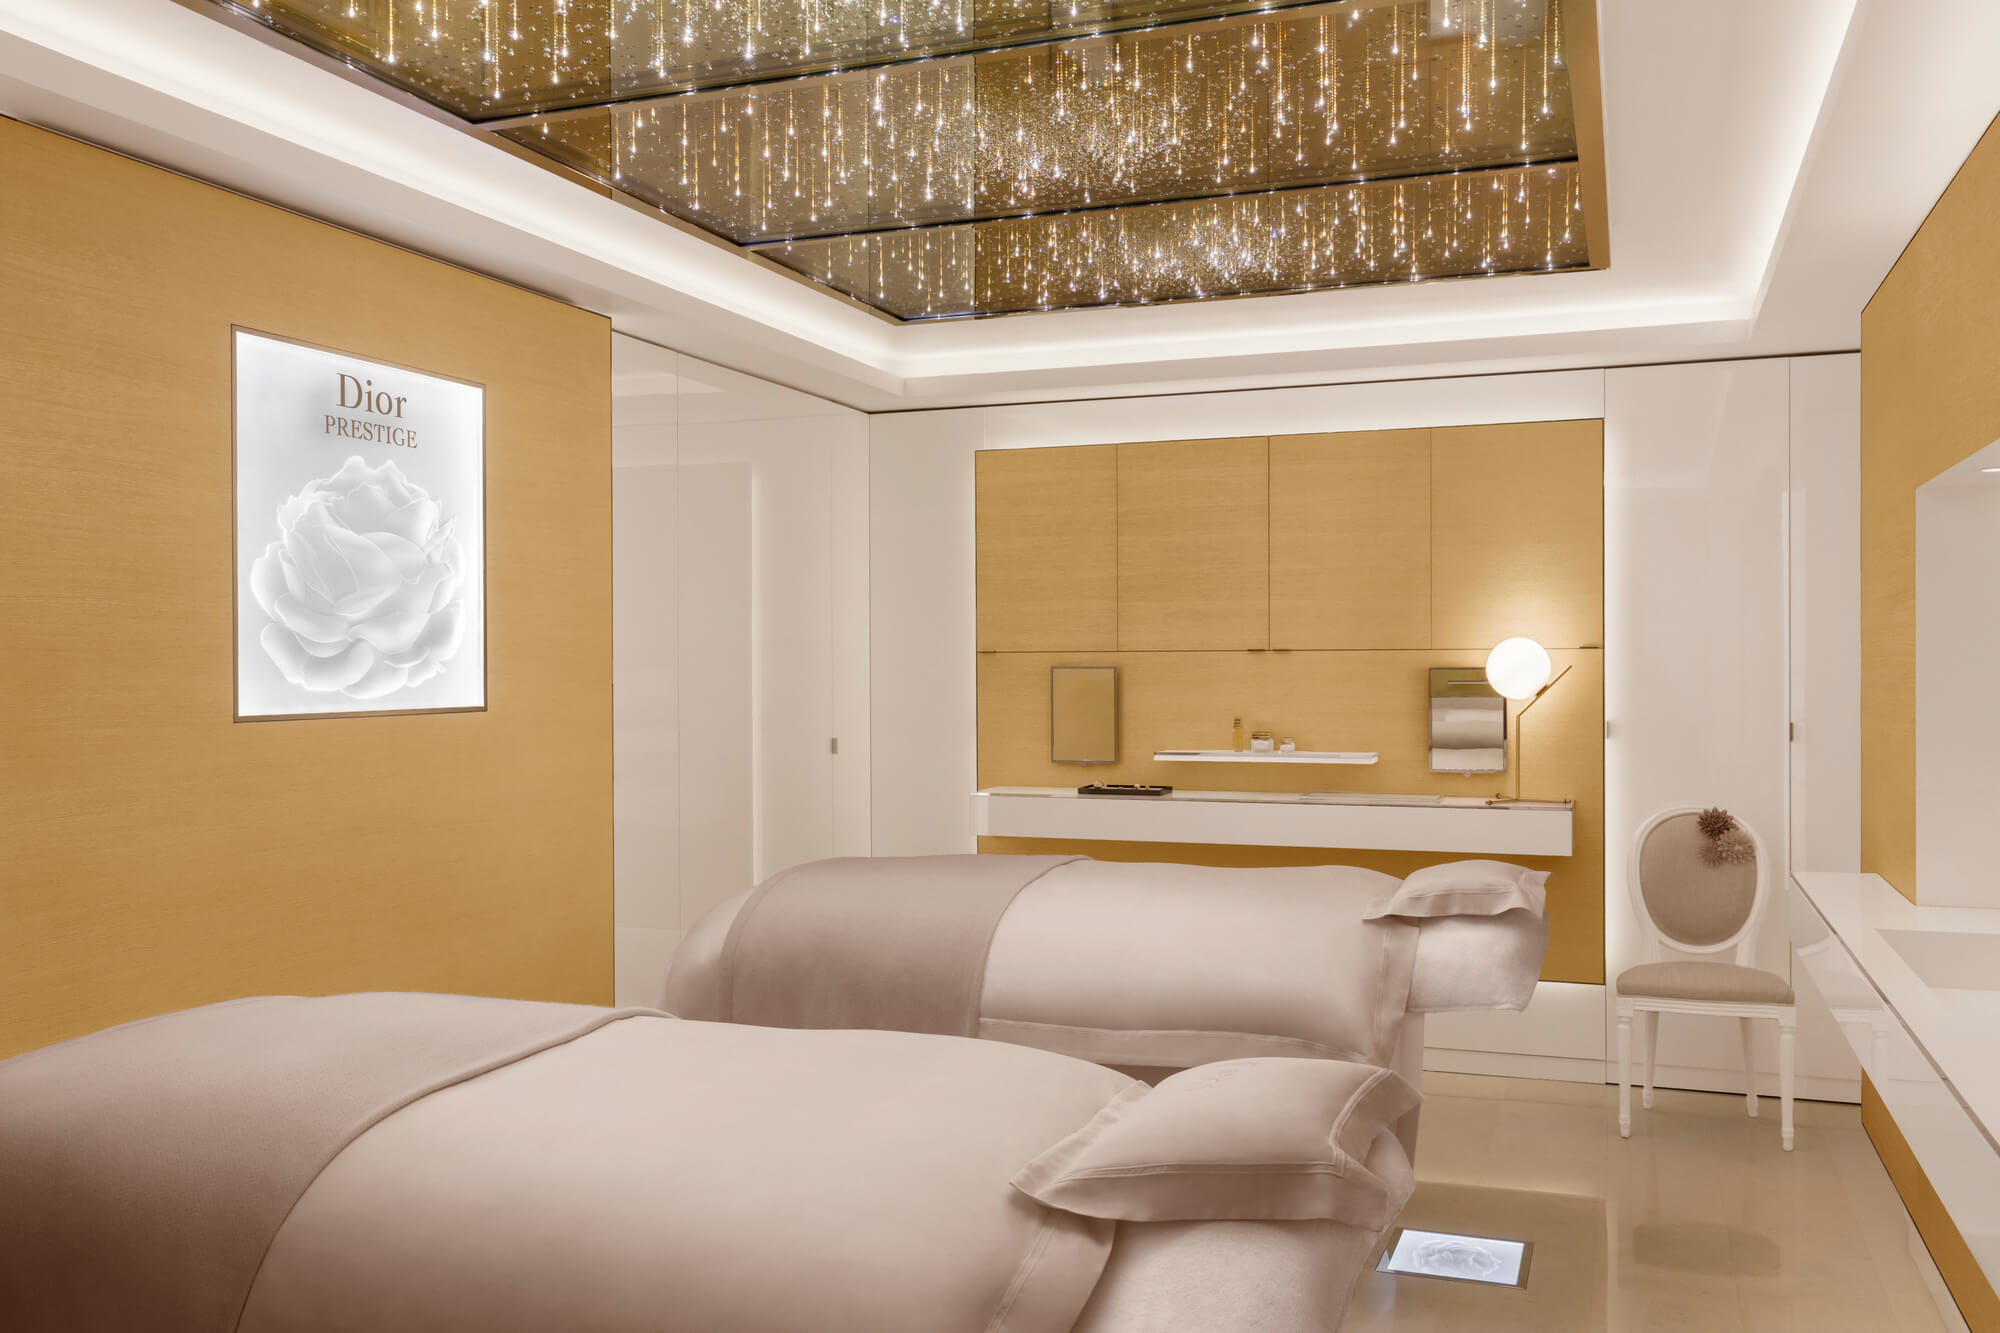 The magnificent double room for the ultimate Spa treatment © Photographer J Galland